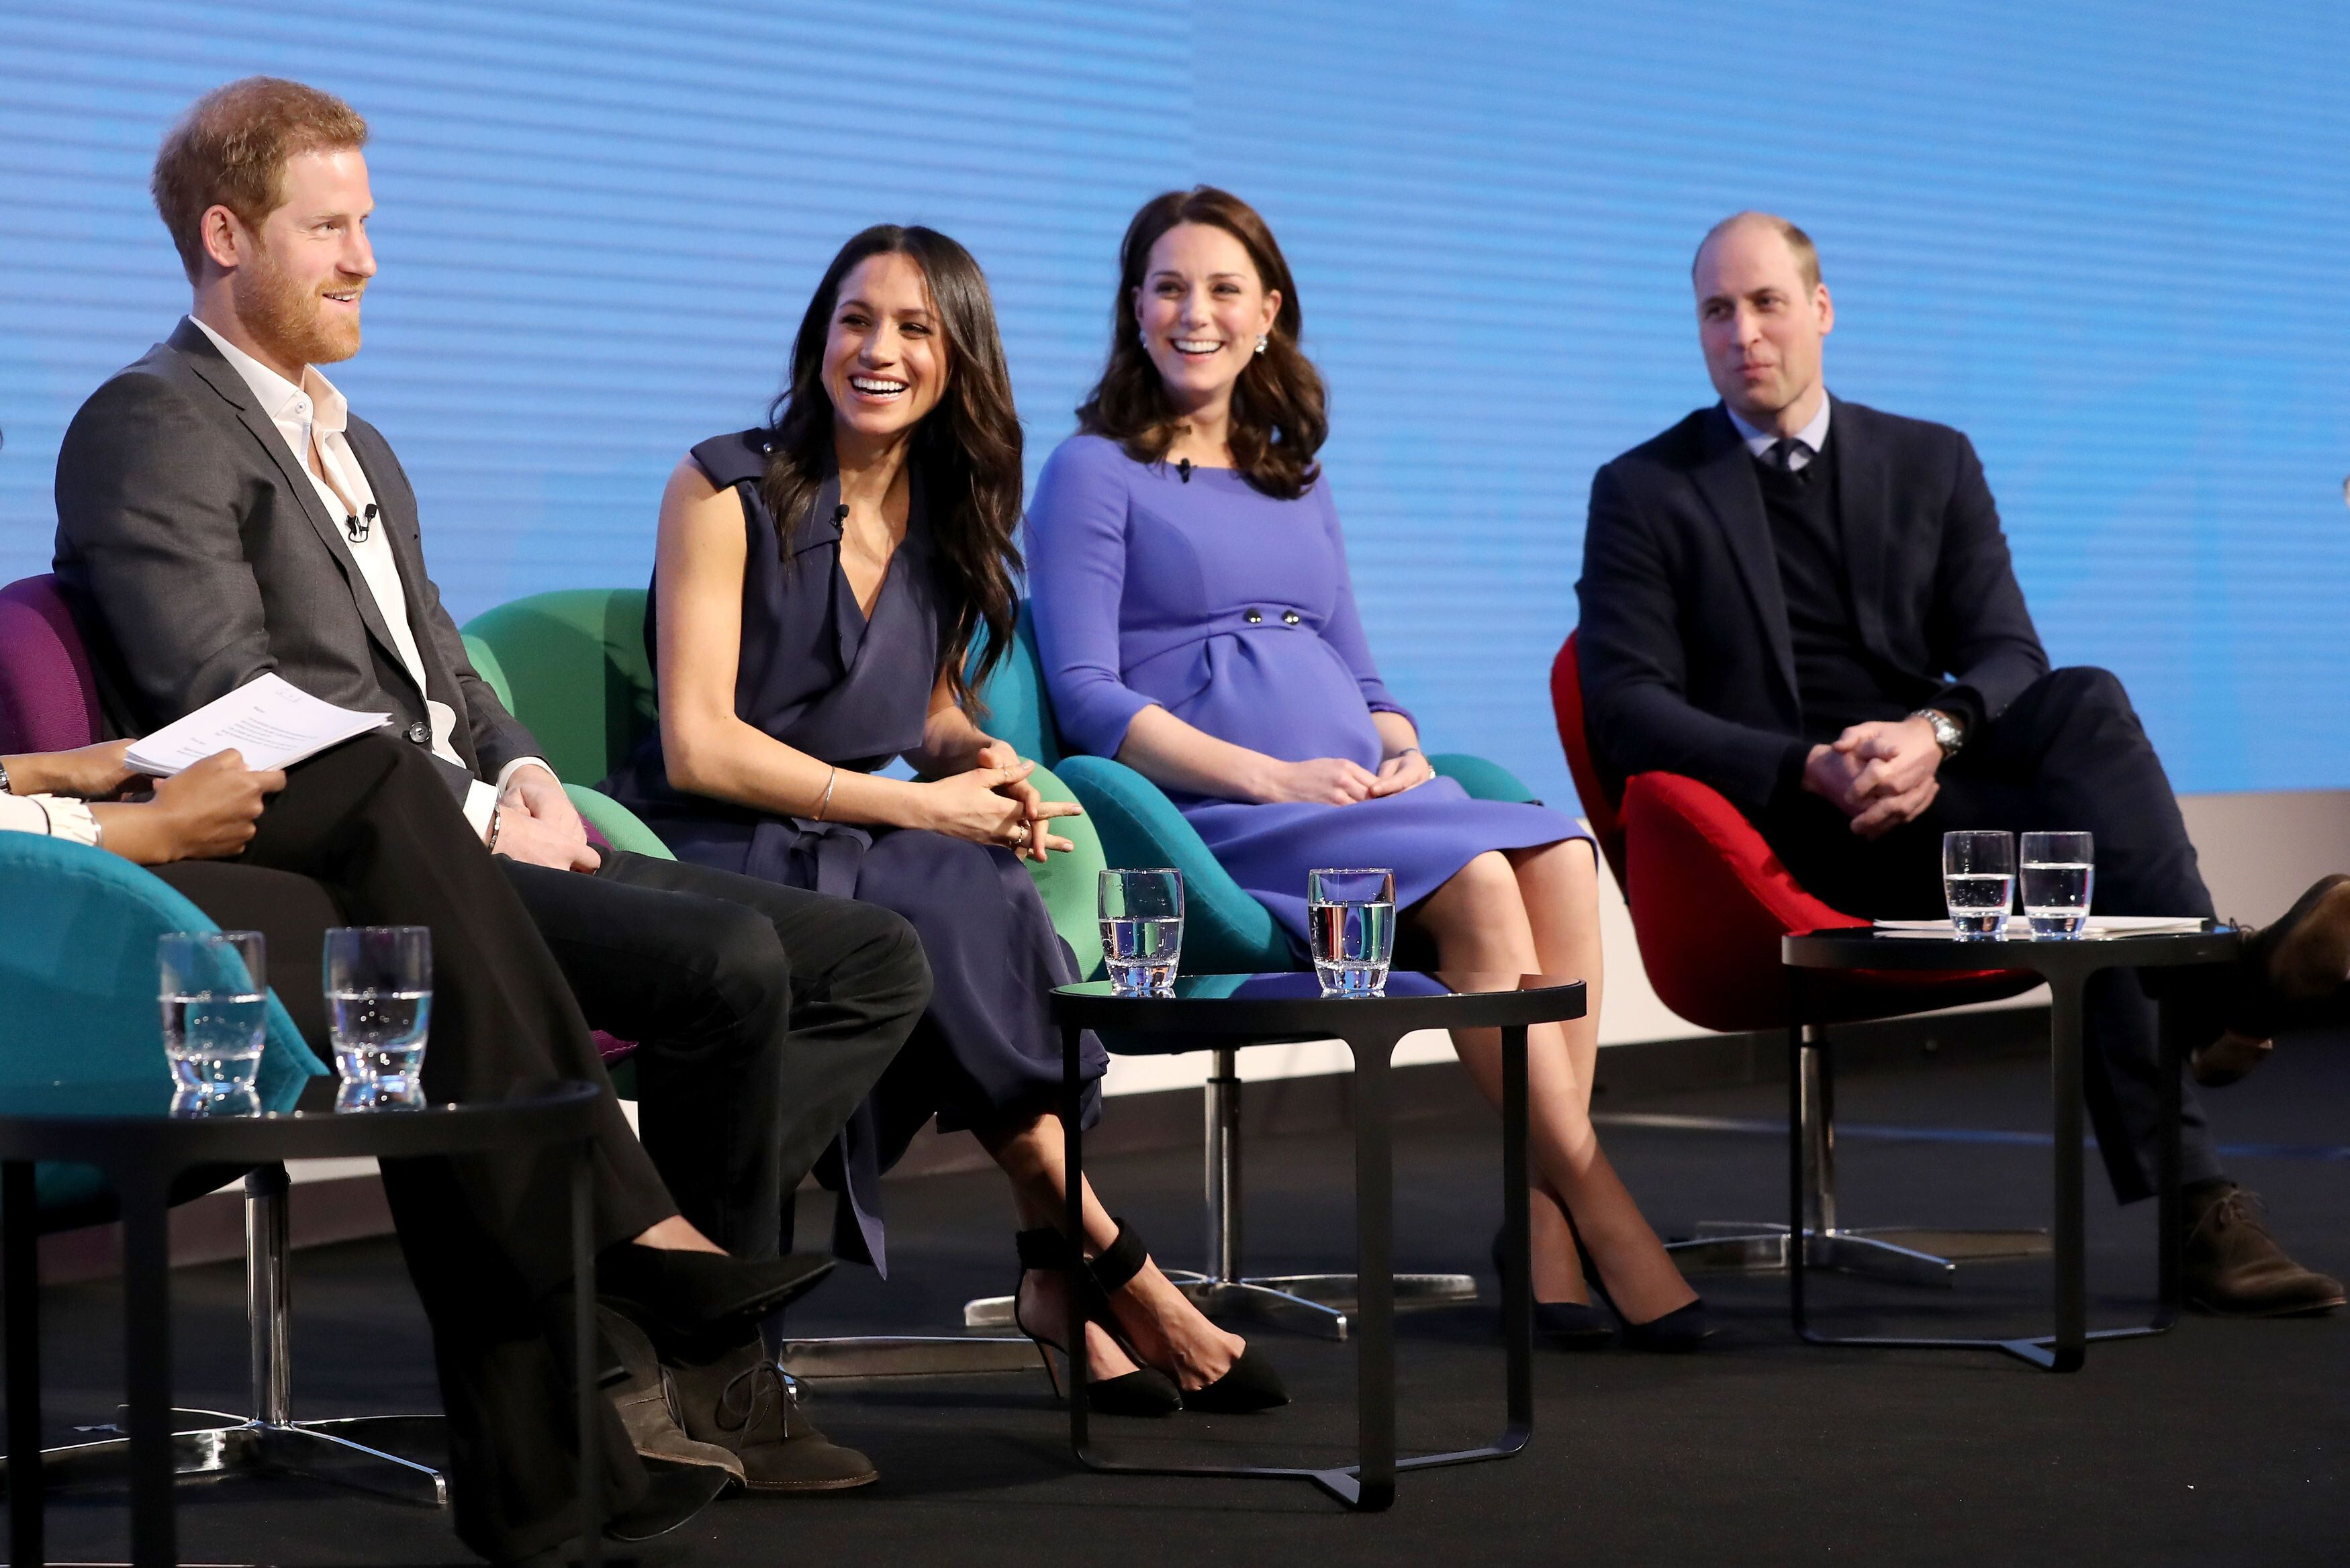 Prince Harry, Meghan Markle and the Duchess and Duke of Cambridge during the first Royal Foundation Forum in February 2018. [Photo: PA]